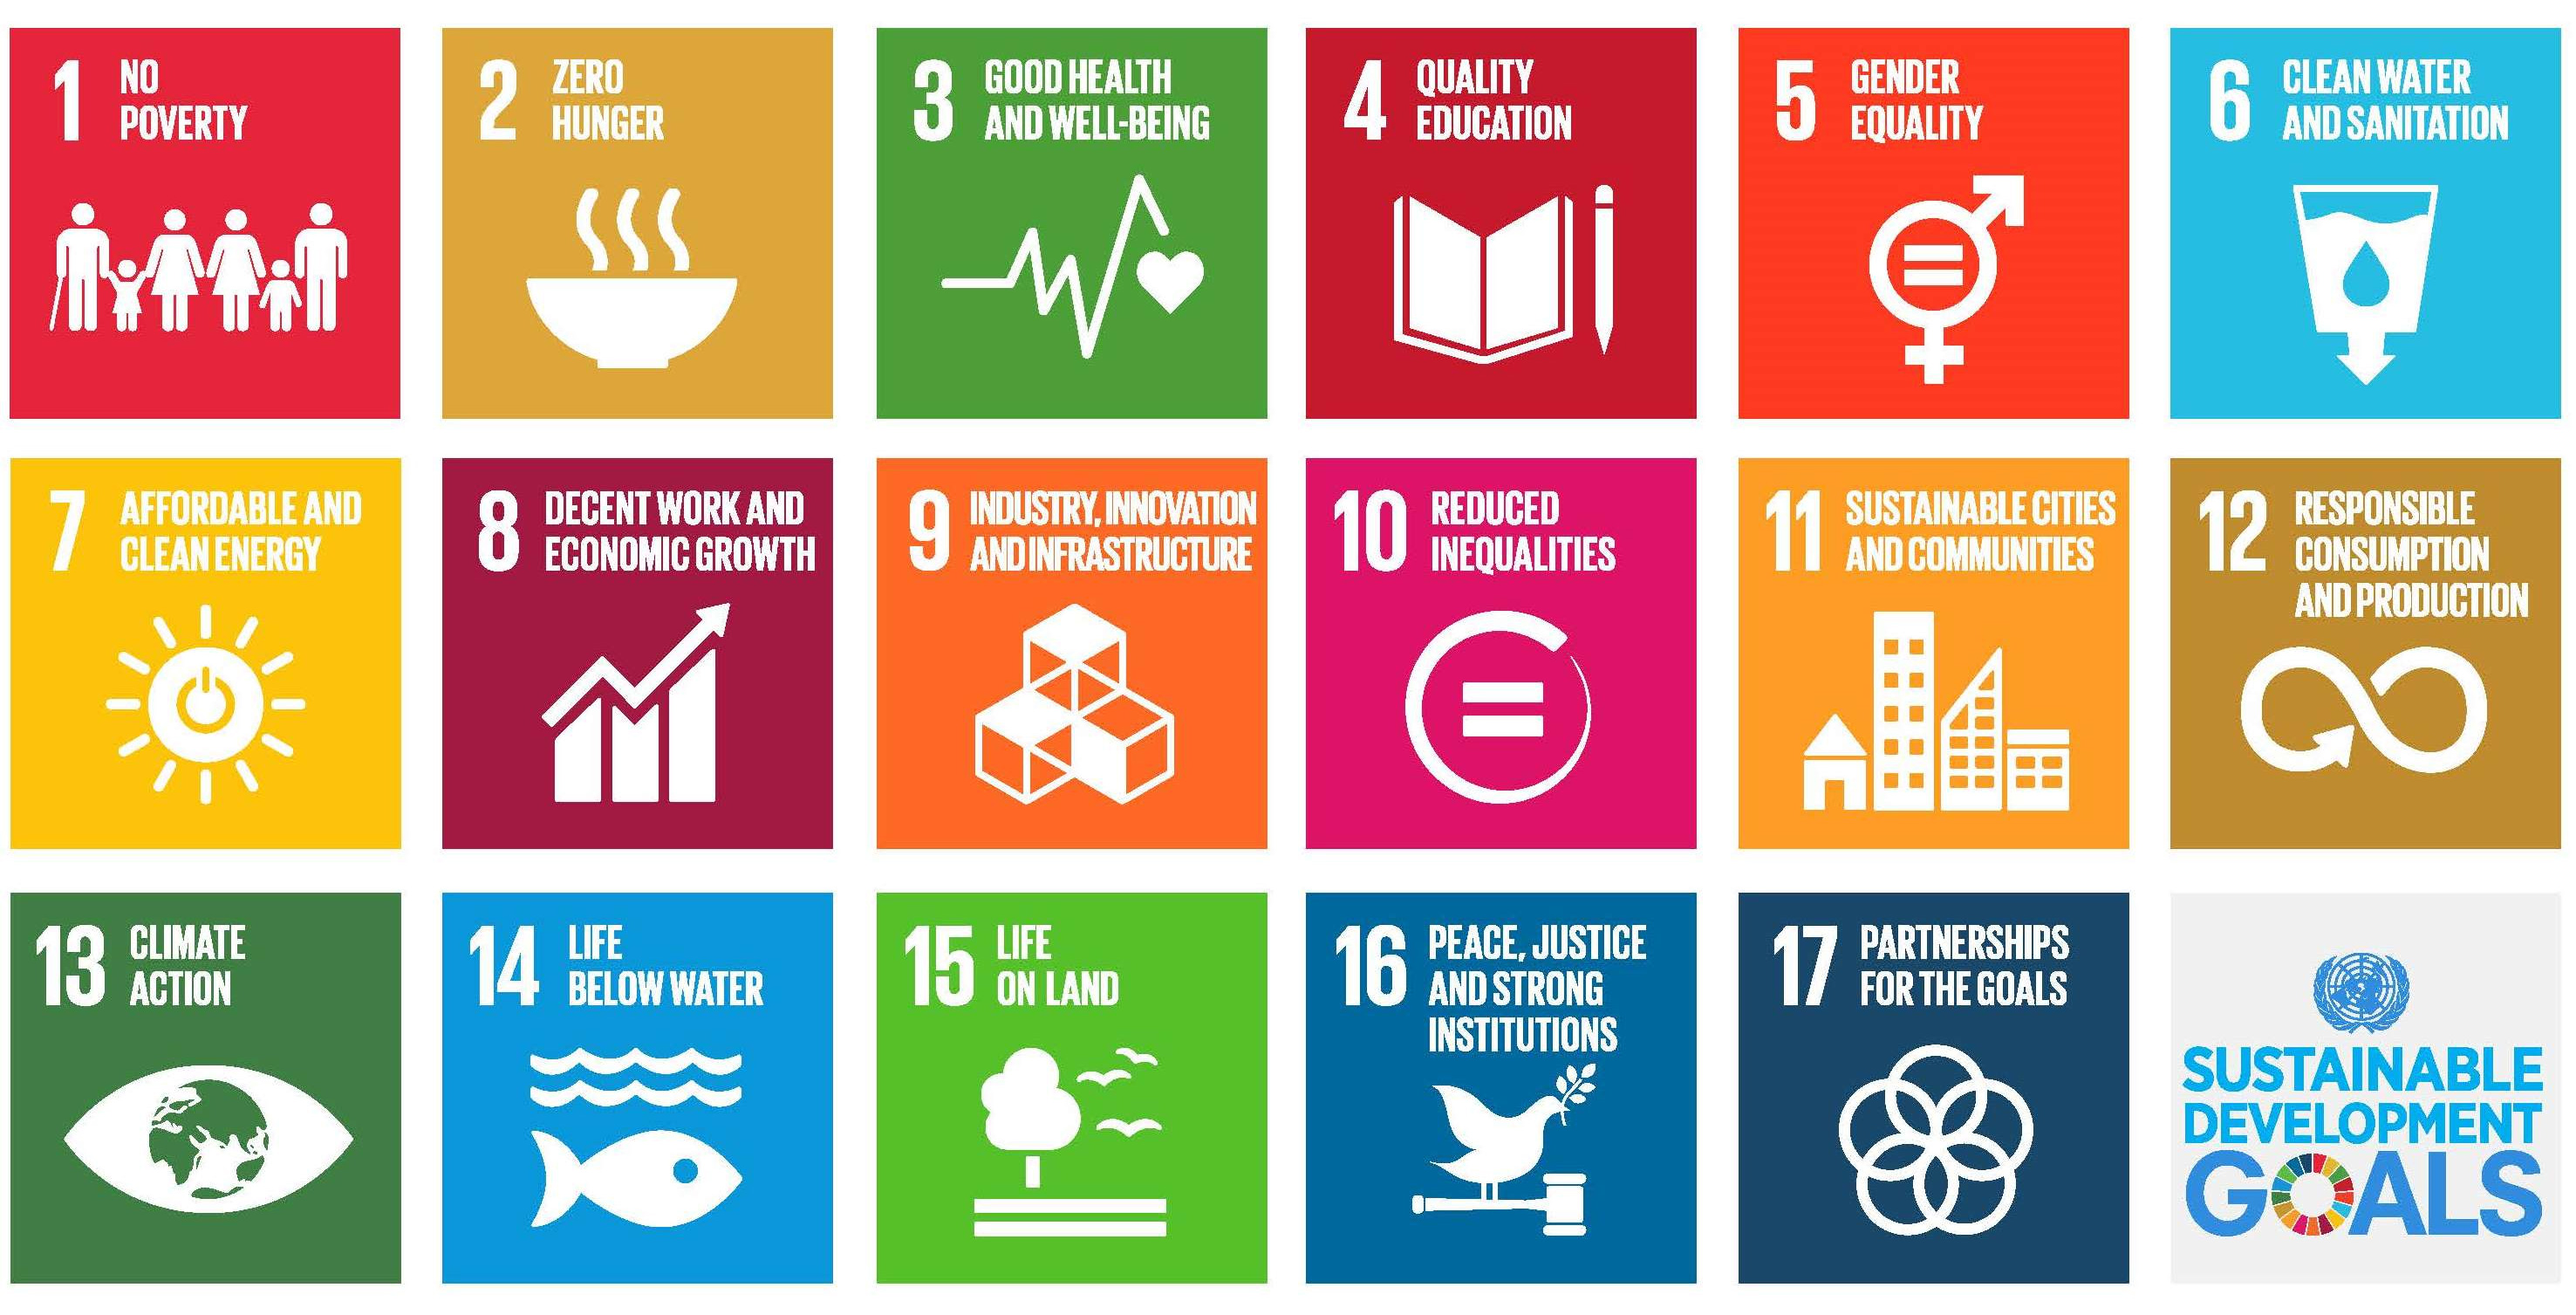 The SDGS aim to provide a global shared blueprint for peace and prosperity for people and the planet.